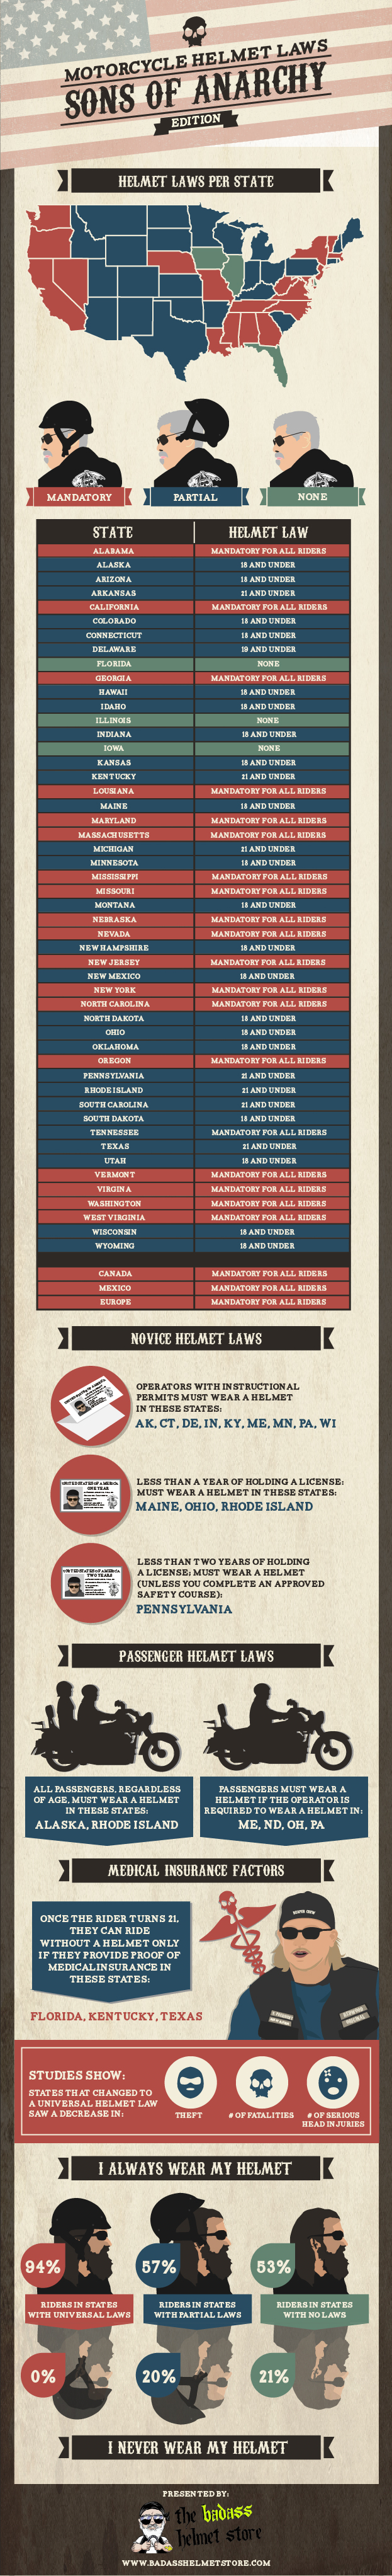 Motorcycle Helmet Laws Across 50 States